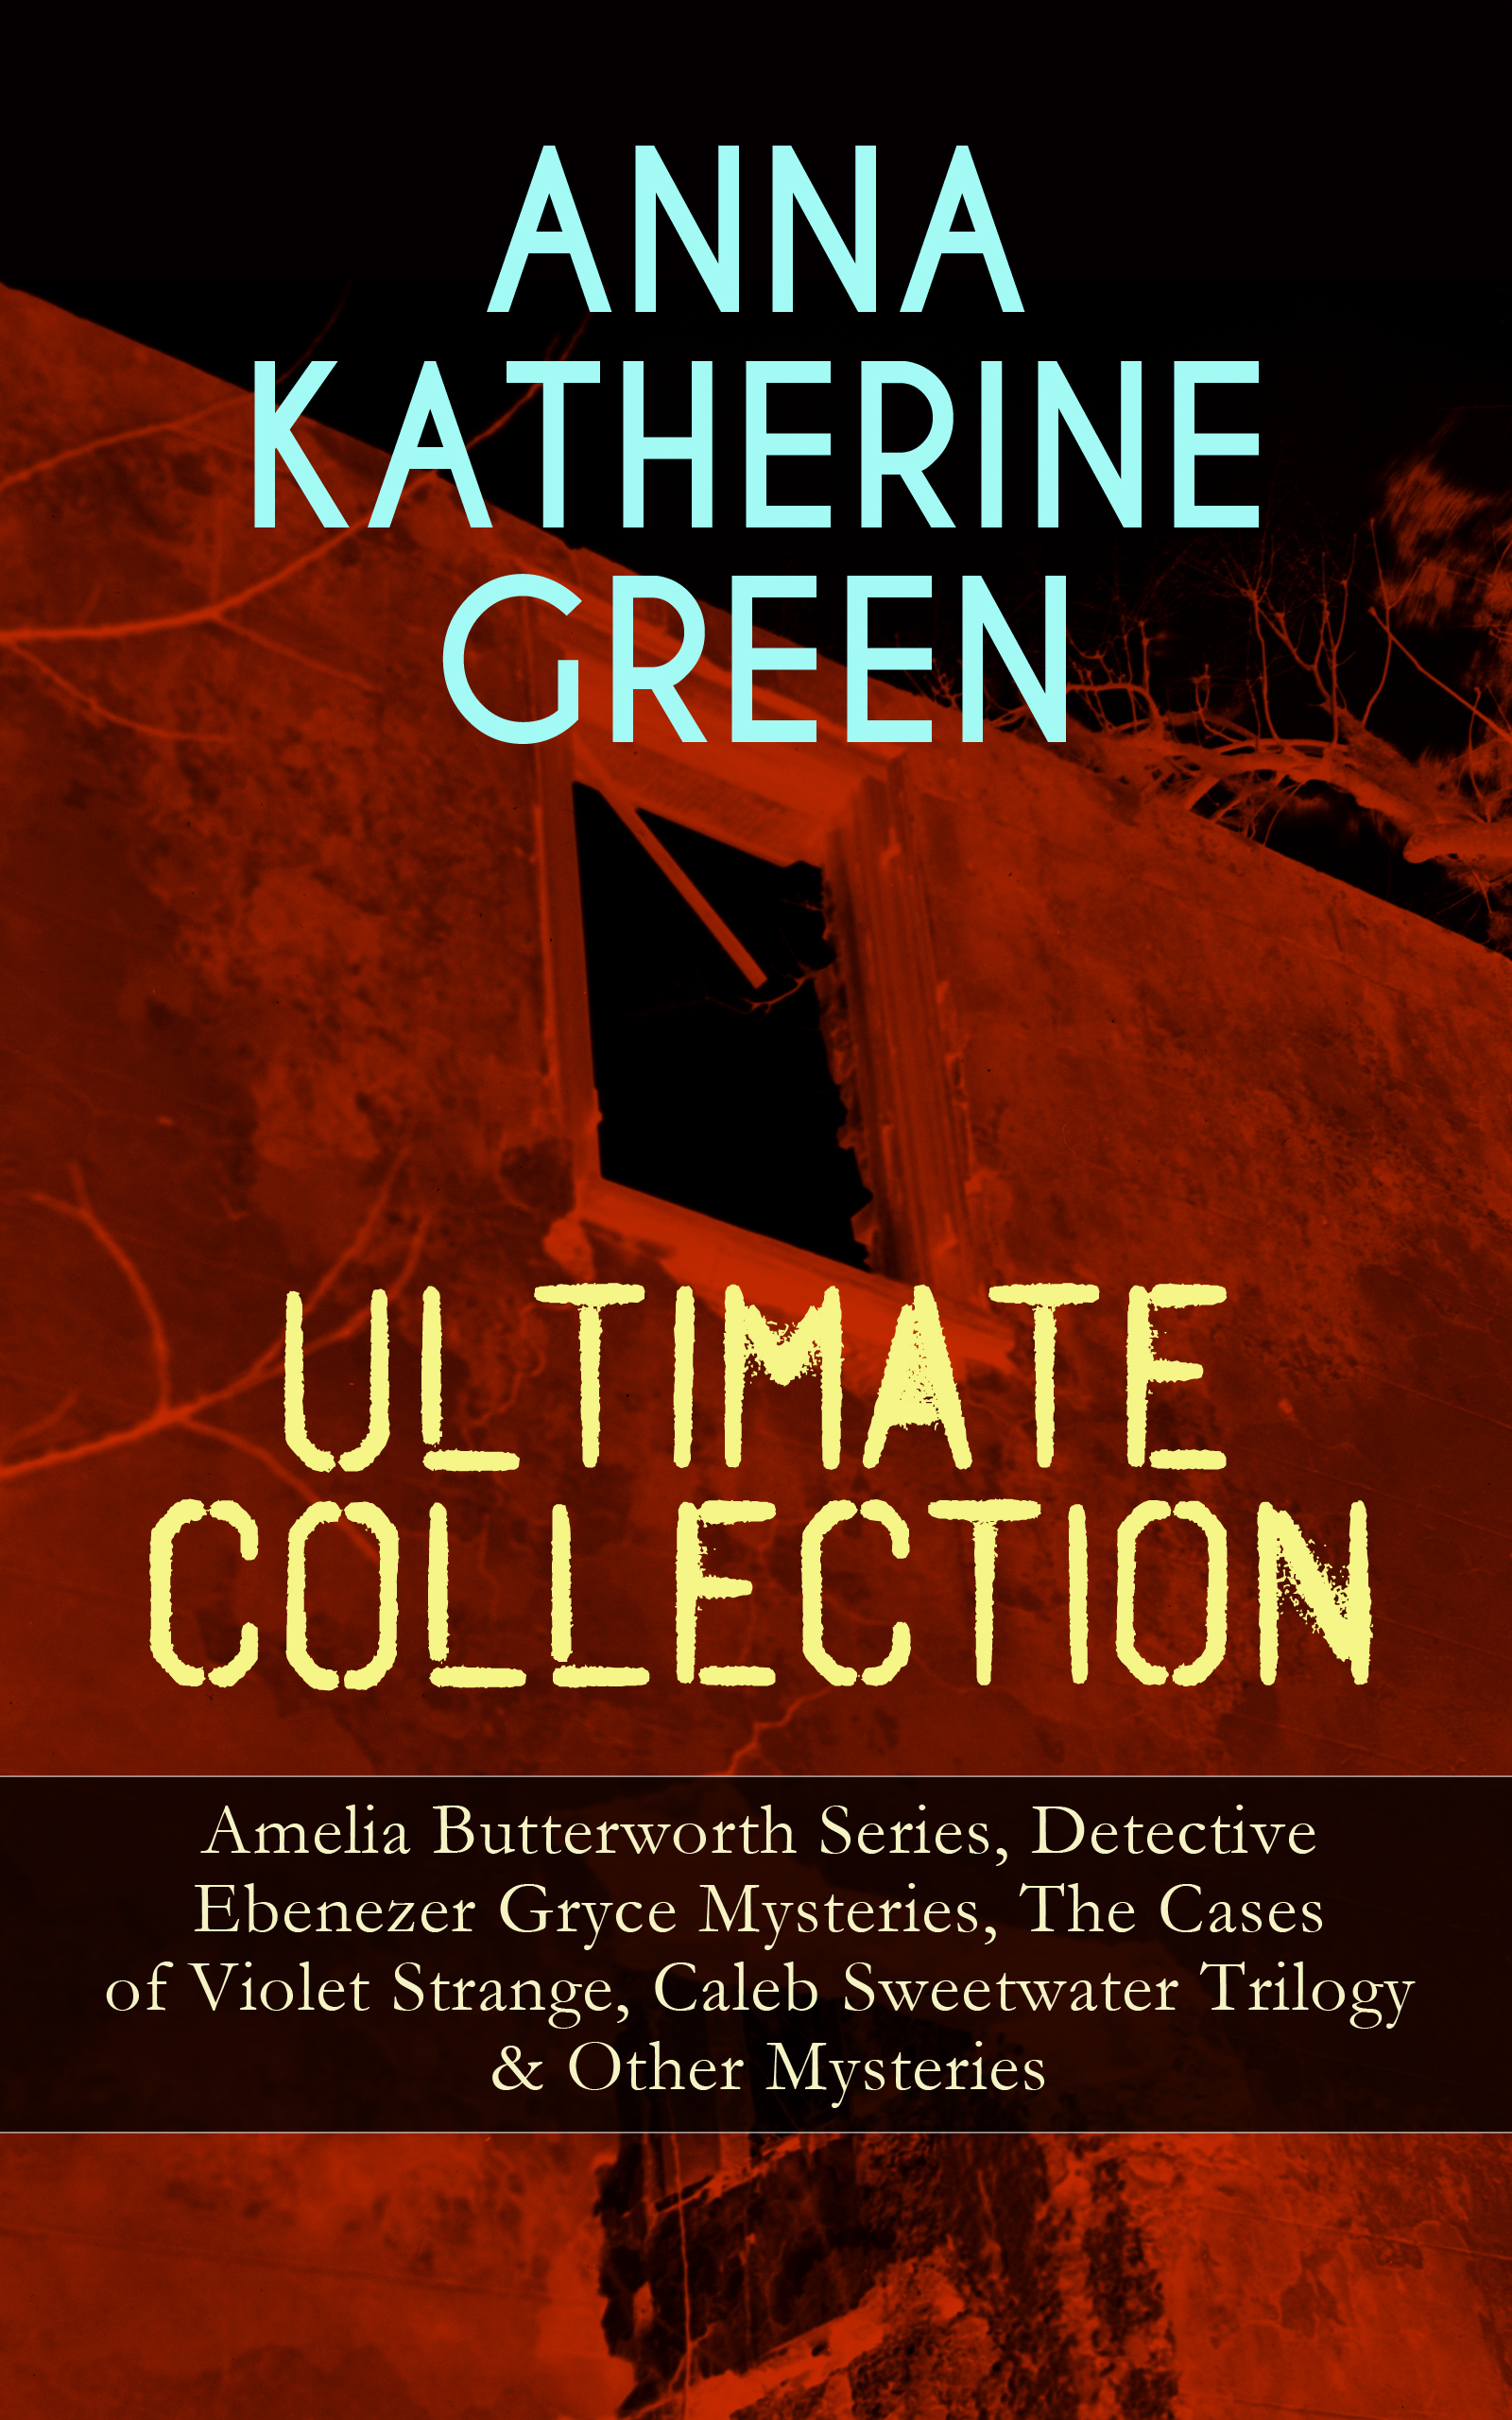 цена на Anna Katharine Green ANNA KATHERINE GREEN Ultimate Collection: Amelia Butterworth Series, Detective Ebenezer Gryce Mysteries, The Cases of Violet Strange, Caleb Sweetwater Trilogy & Other Mysteries